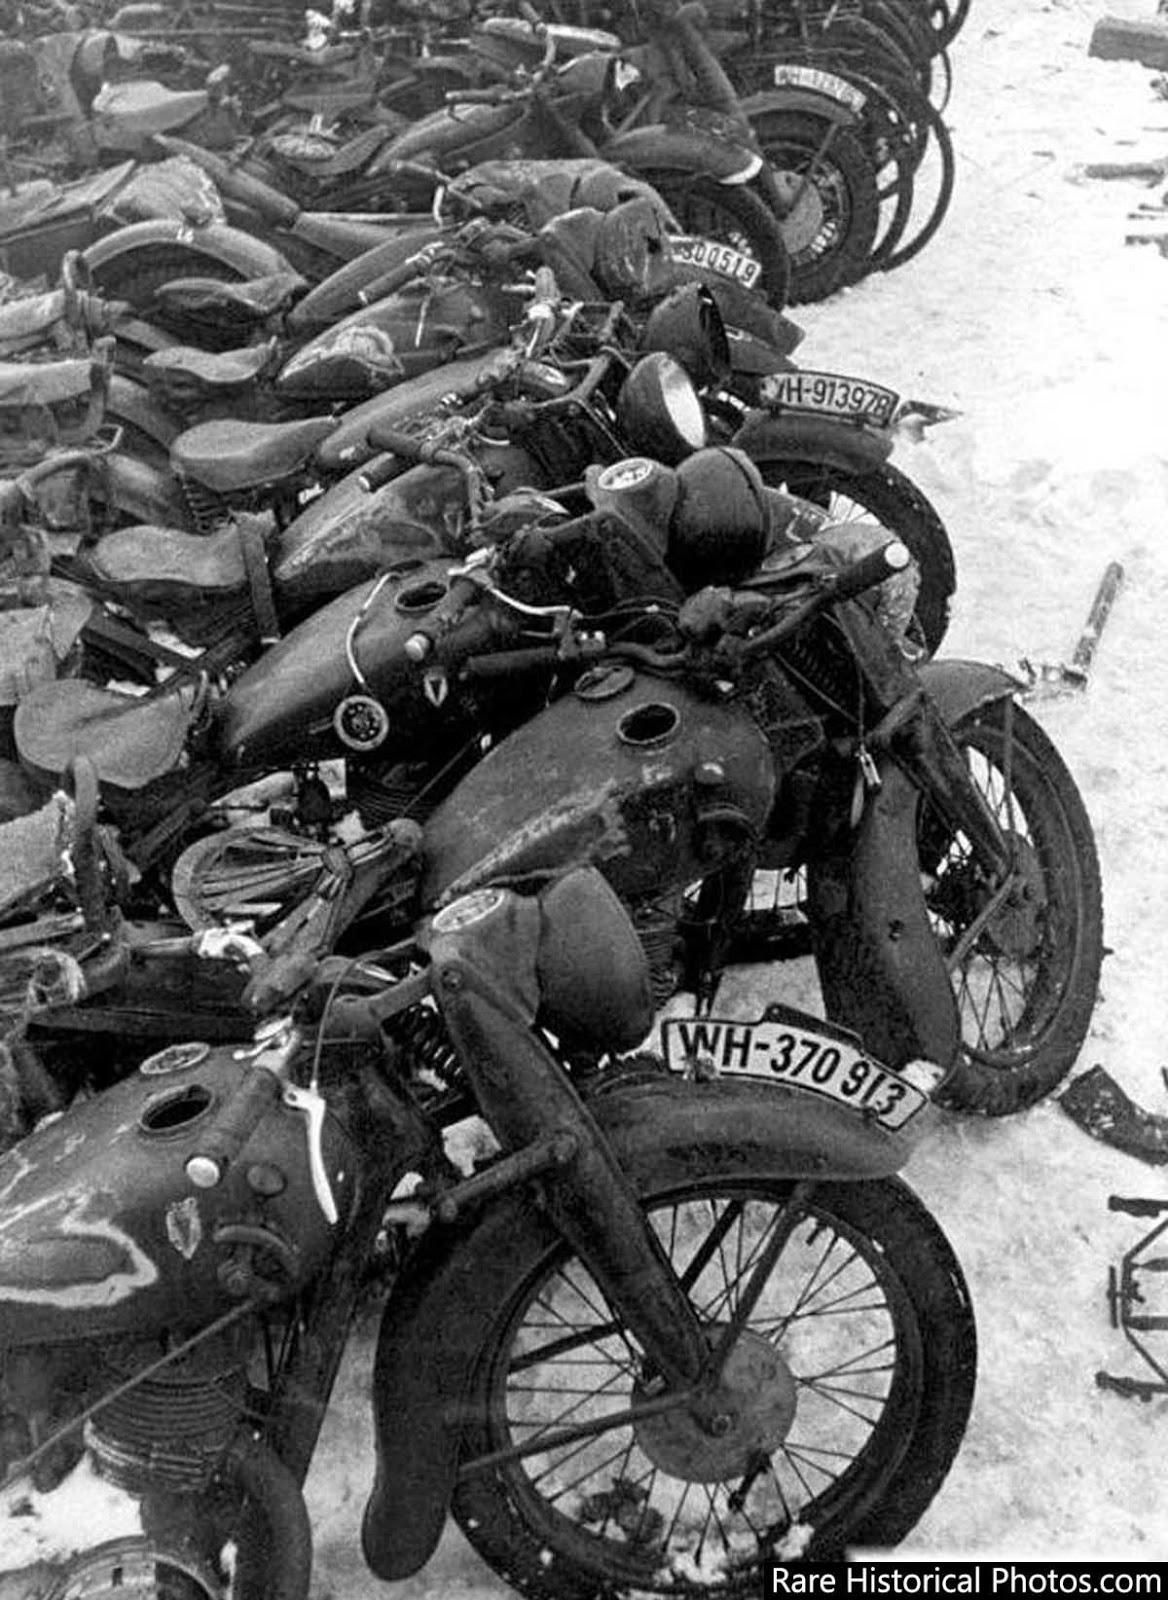 Captured German motorcycles at Stalingrad. 1943.